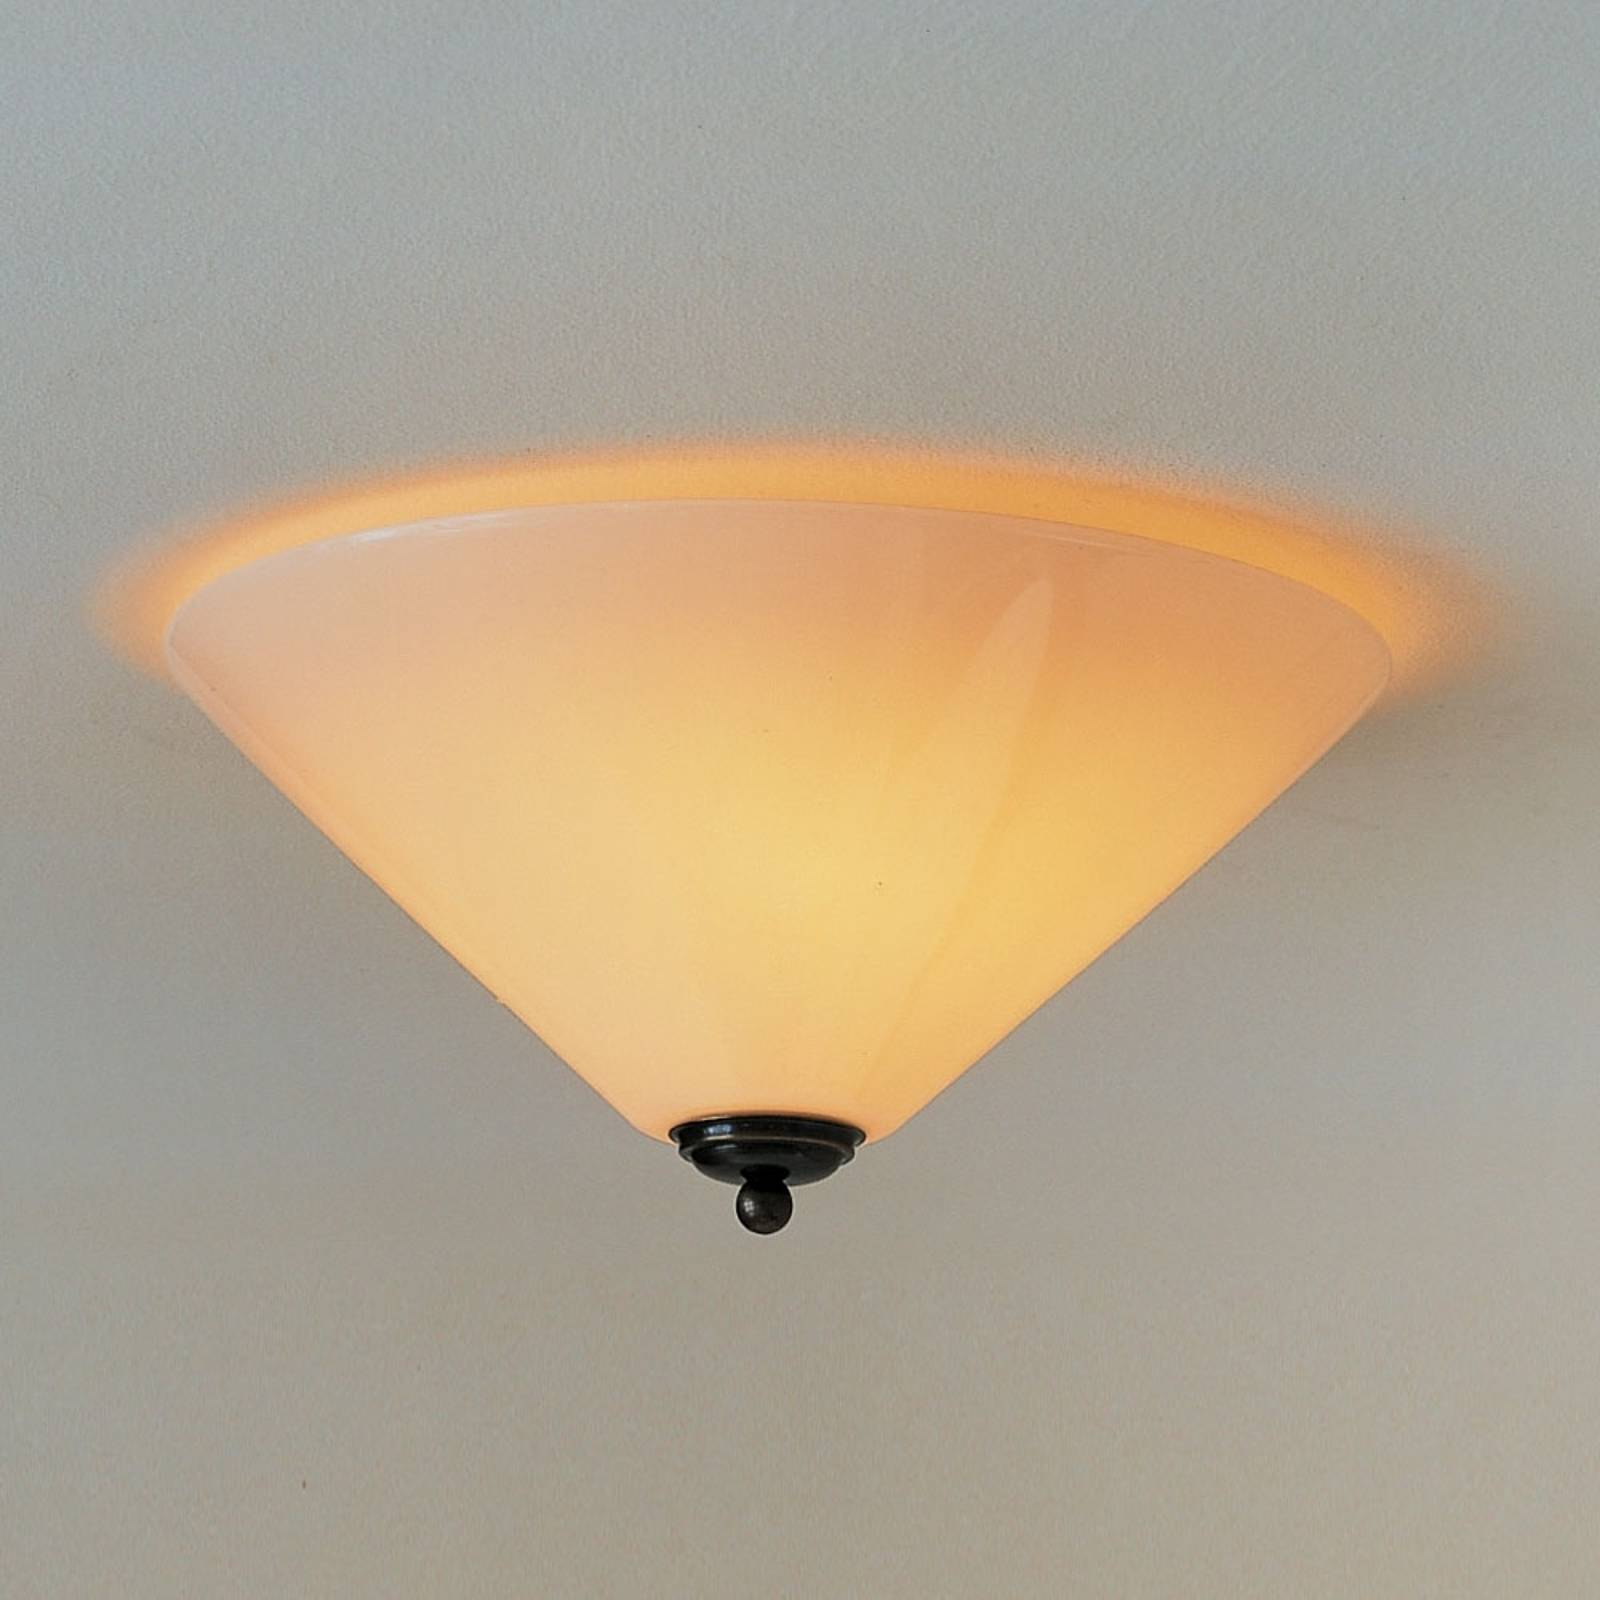 Classic YEAR 1900 ceiling light from MENZEL